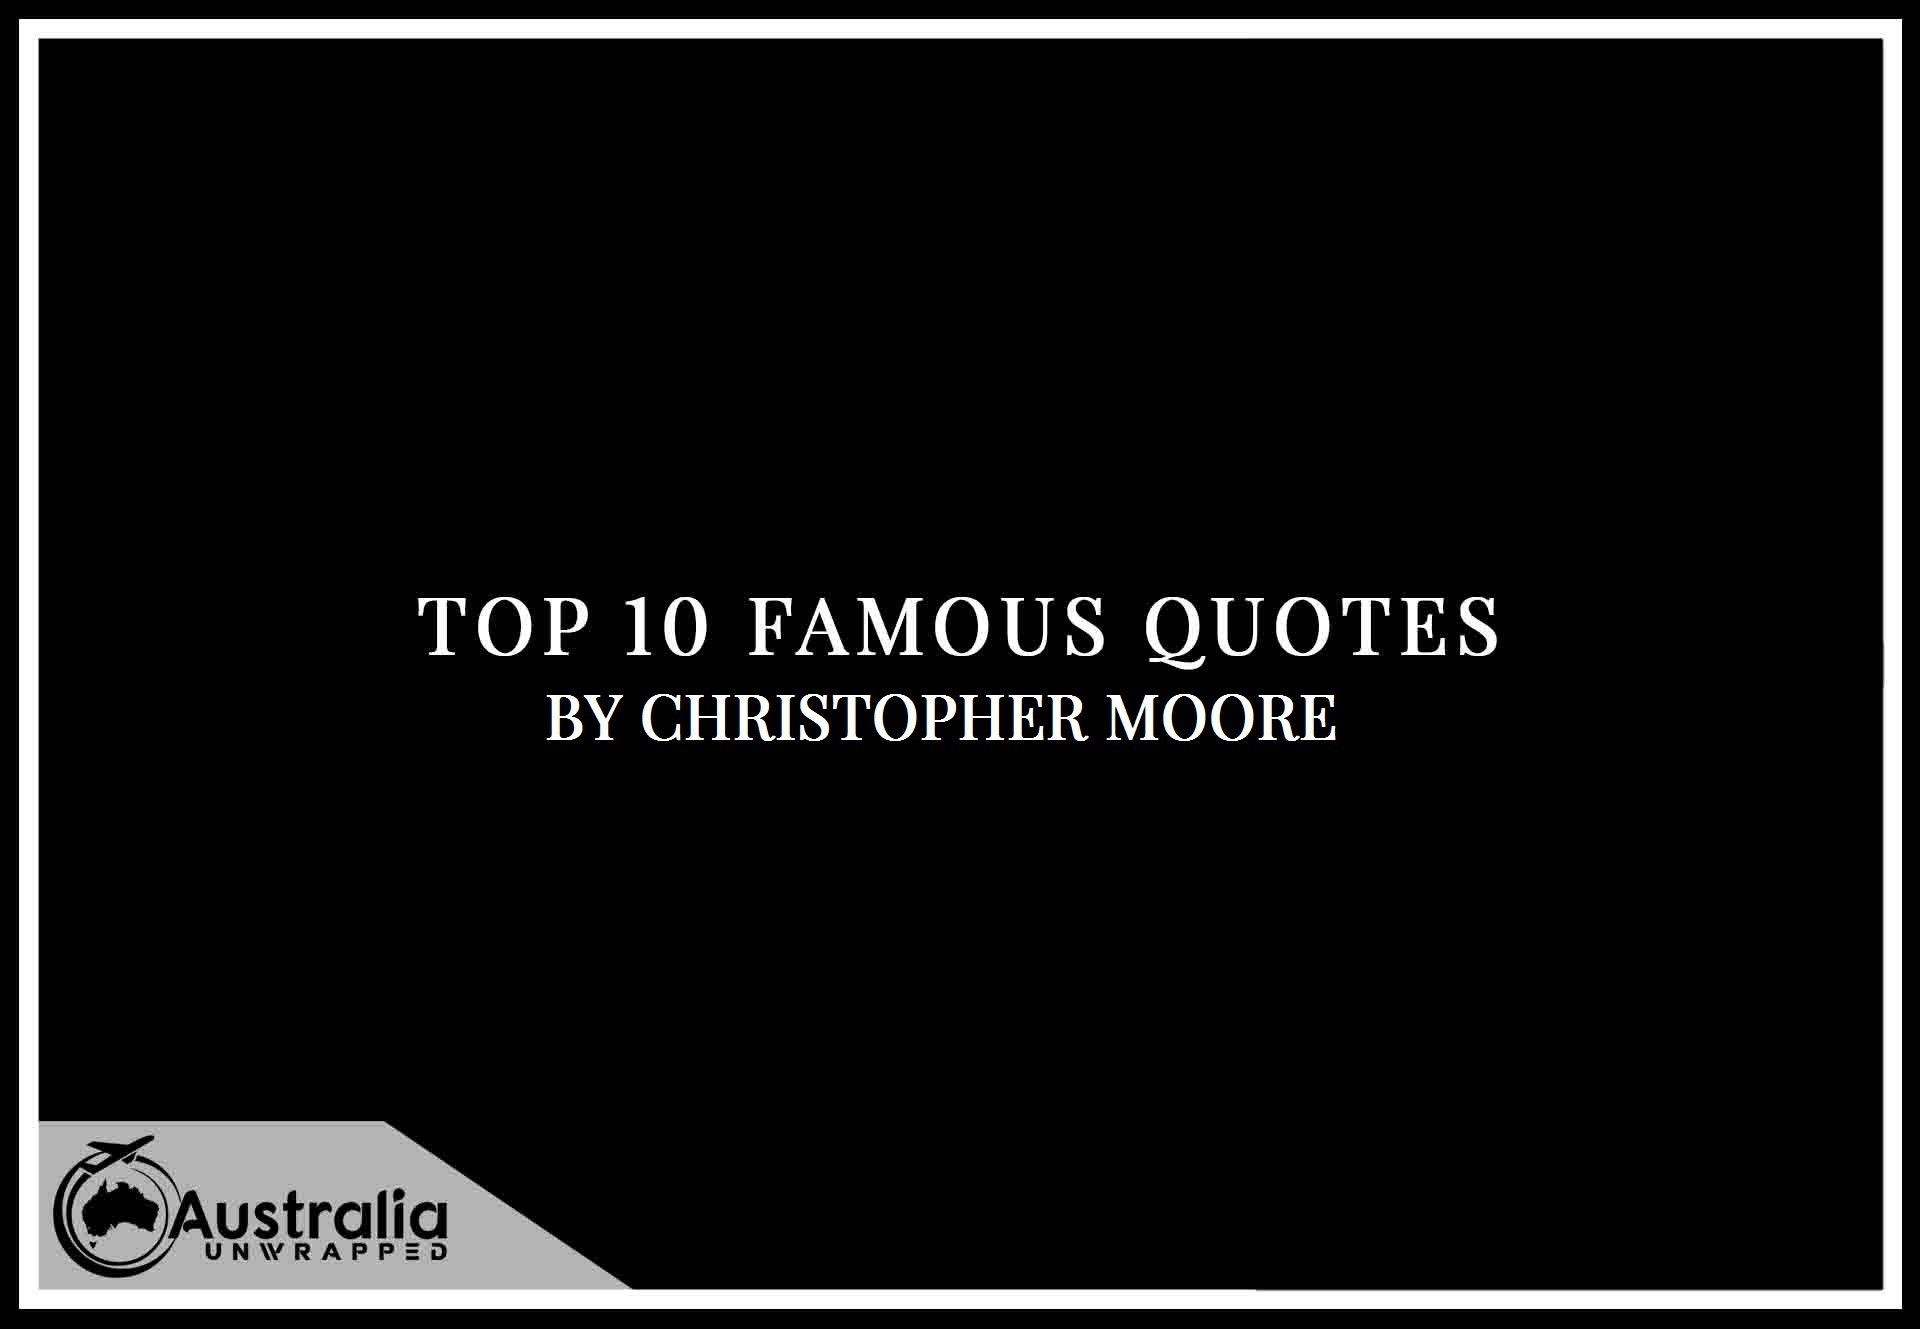 Christopher Moore's Top 10 Popular and Famous Quotes